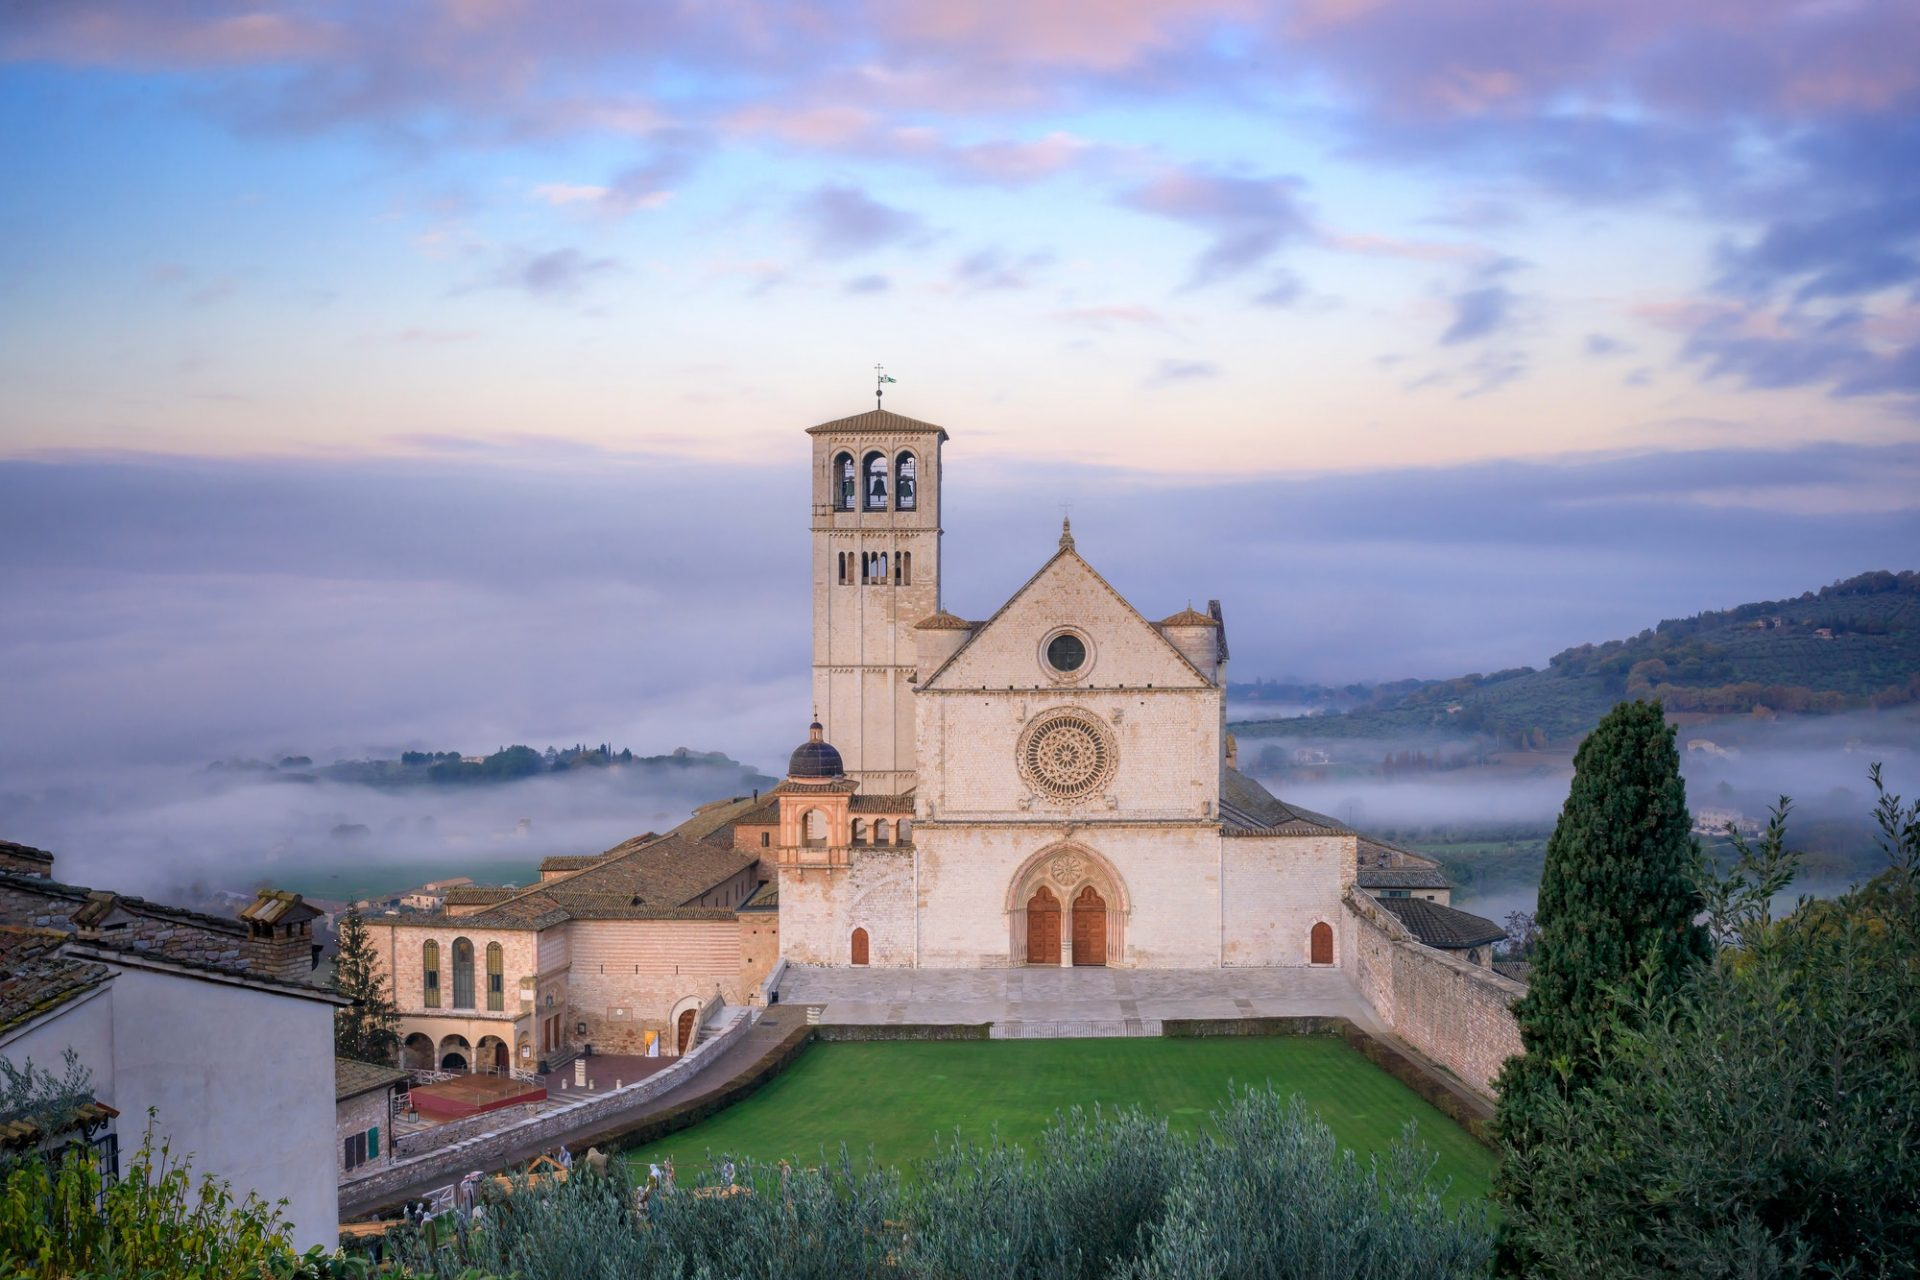 The majestic Basilica of San Francesco in Assisi, Italy